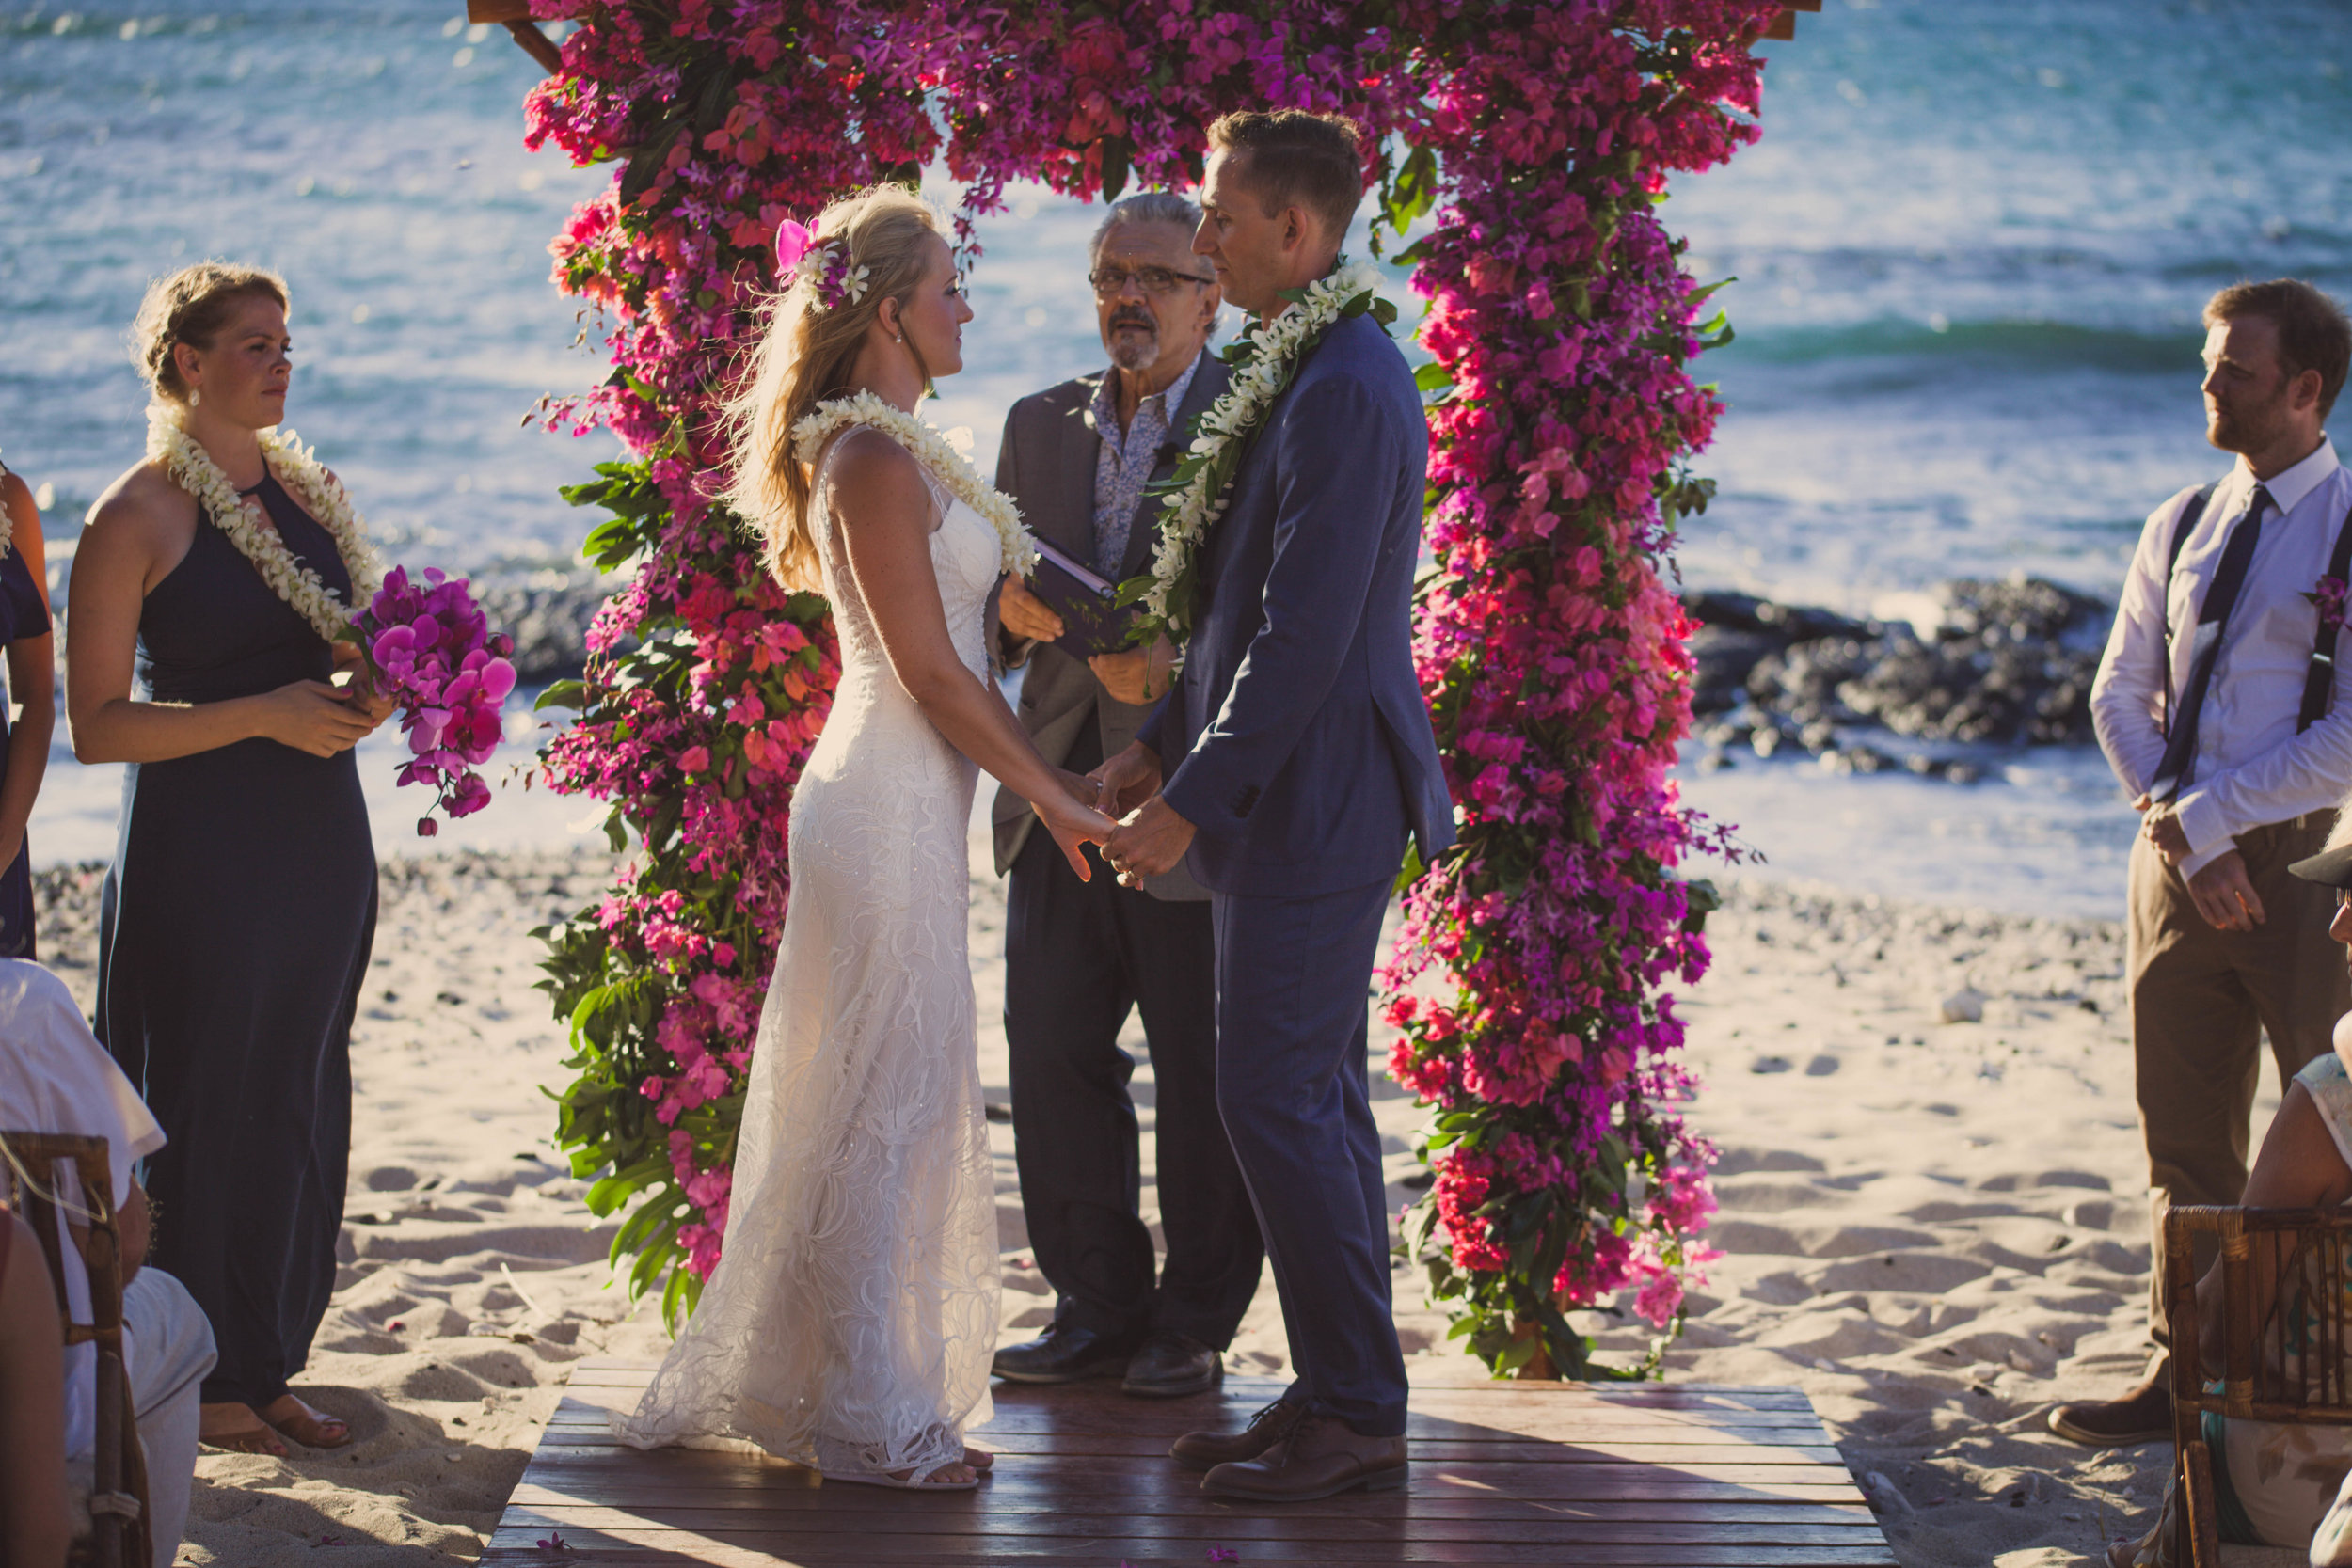 big island hawaii fairmont orchid beach wedding © kelilina photography 20170812174715-1.jpg